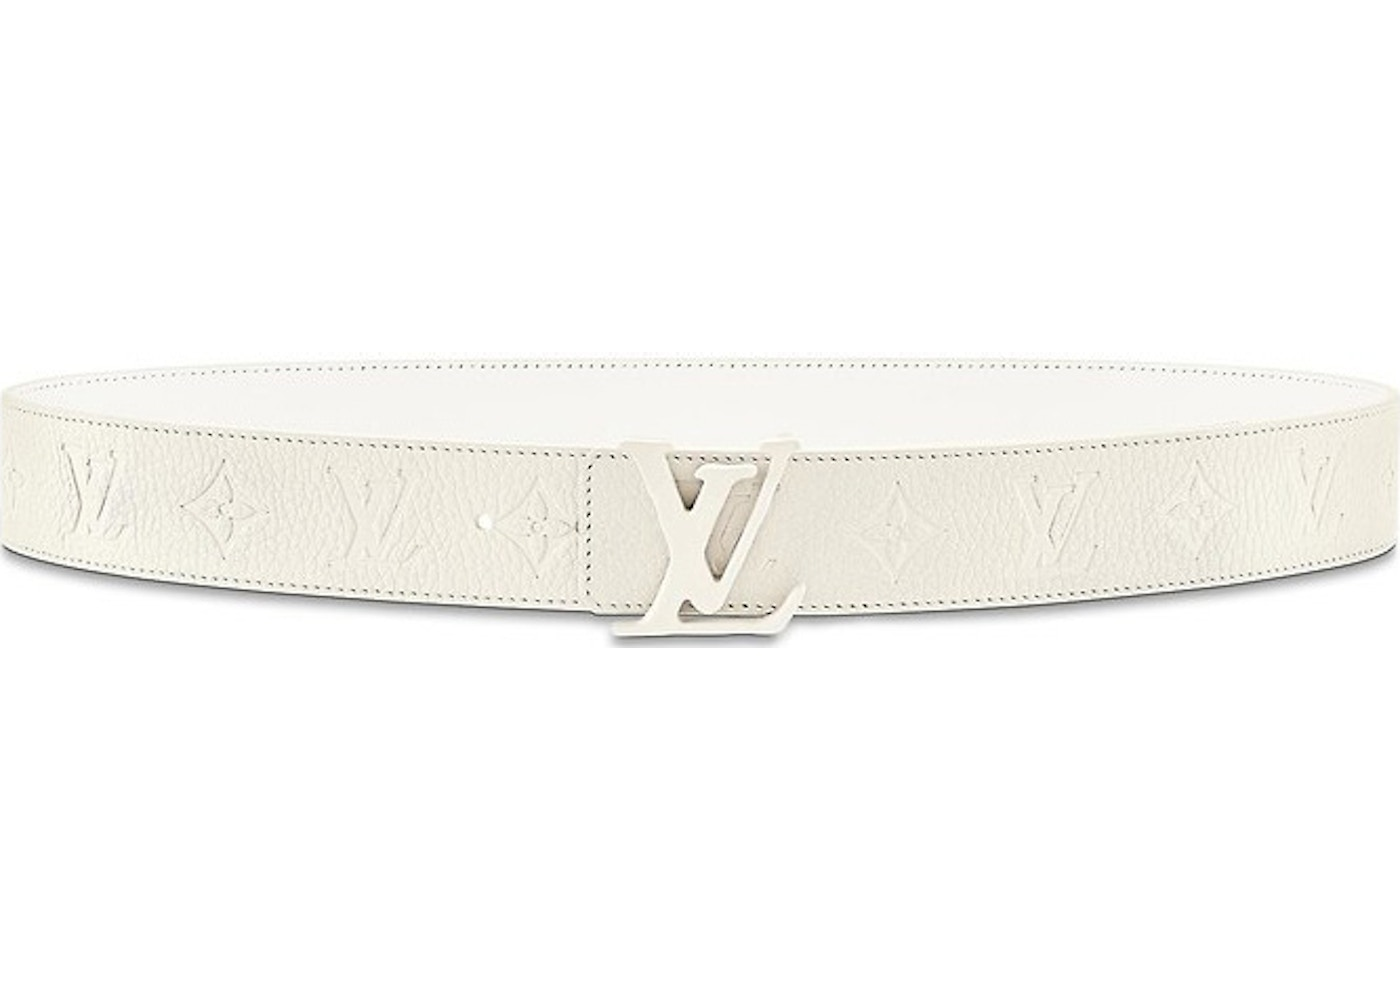 00c6ef538 Louis Vuitton Initials Shape Belt Monogram 40MM Powder White. Monogram 40MM  Powder White